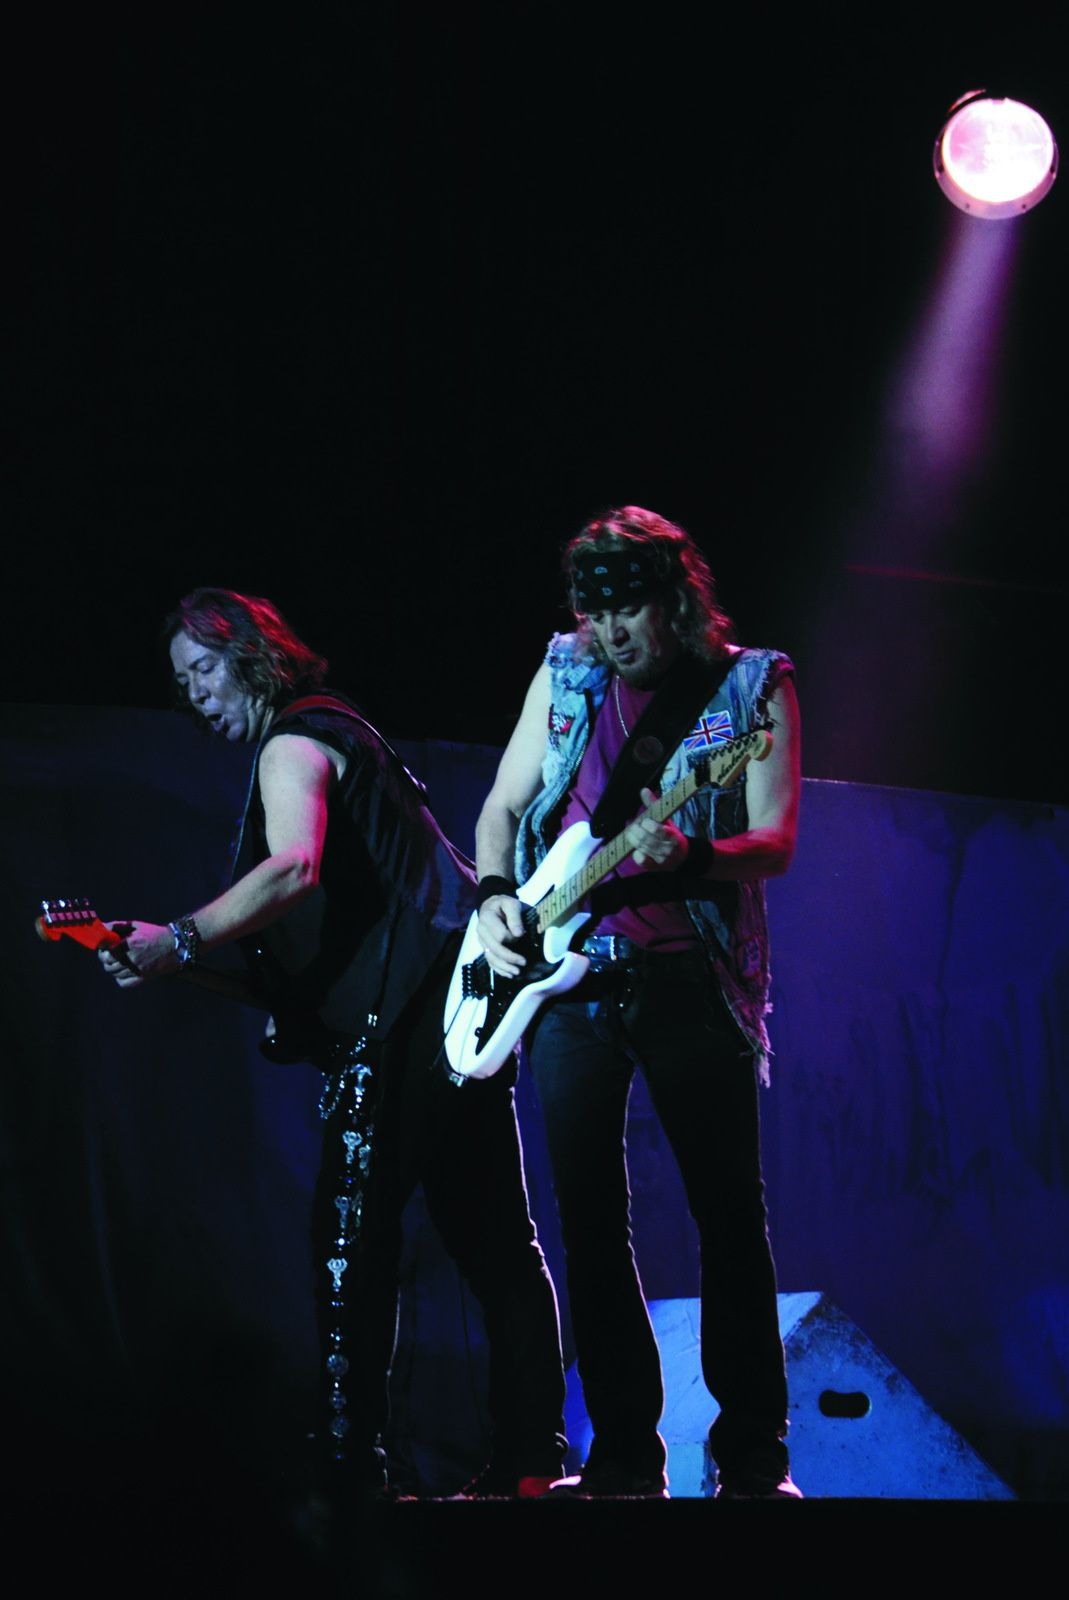 Adrian Smith and Dave Murray, Iron Maiden in Paraguay (2013) - credit: Rocio Cespedes